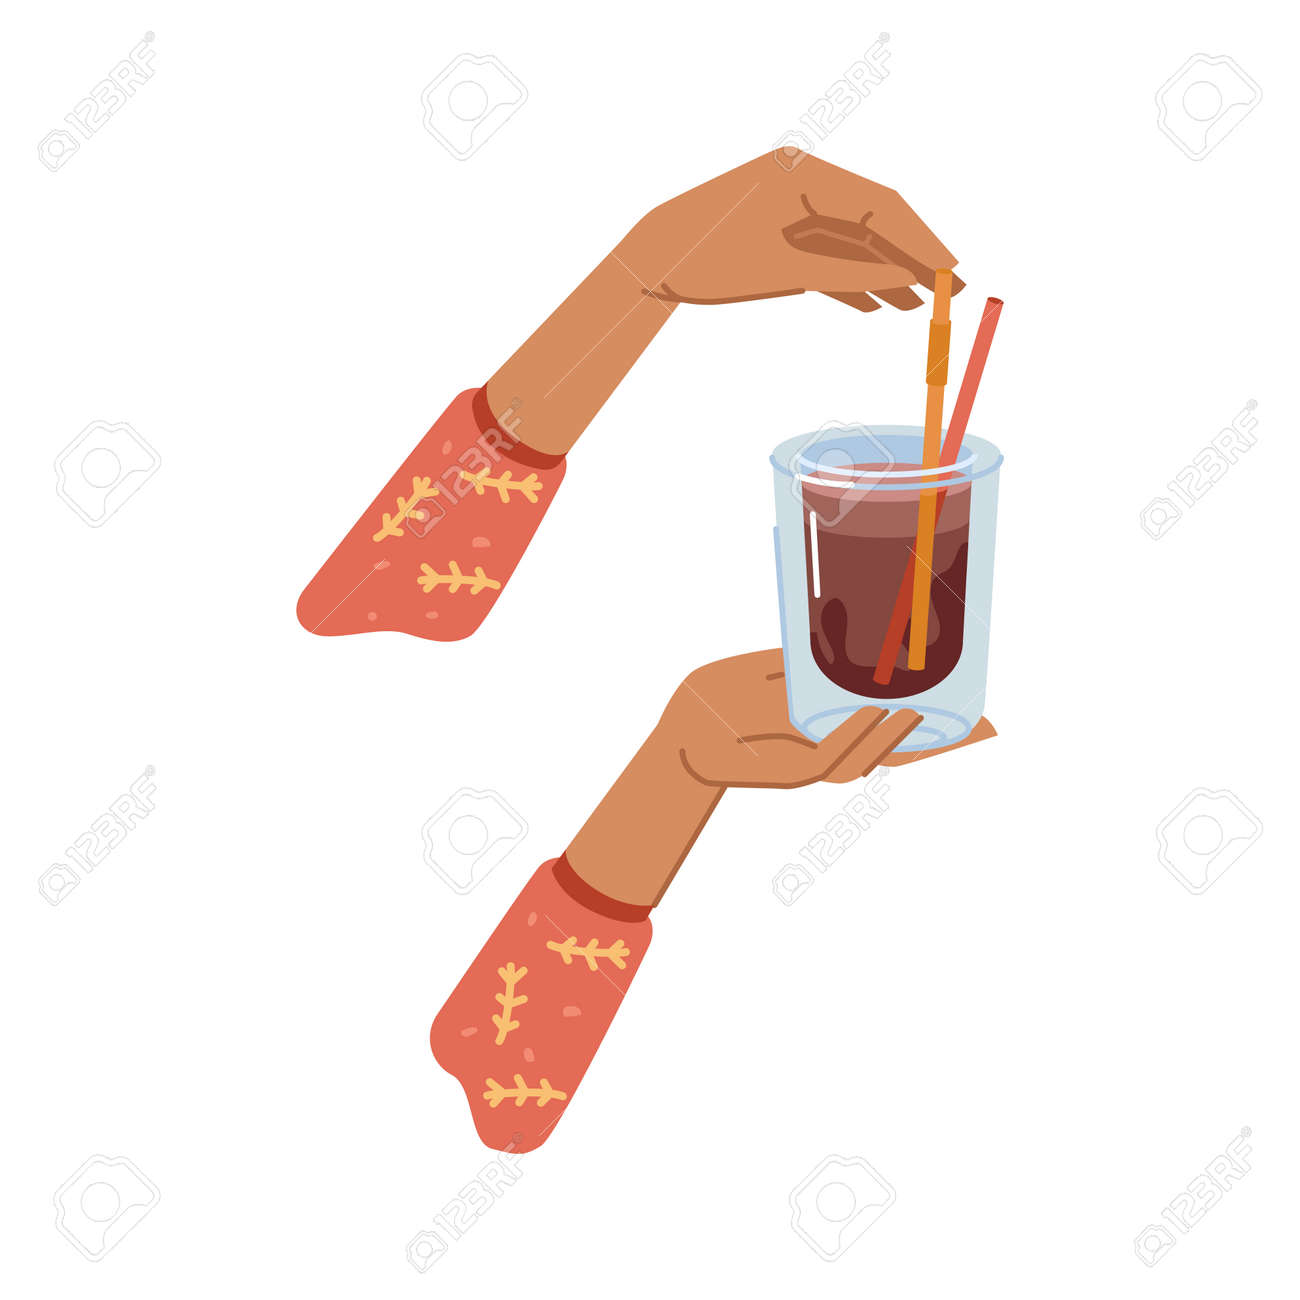 Cocoa or tea hot beverage poured in glass cup with decorative straw. Hands holding mug with drink, coffee or latte, delicious caffeine cappuccino for breakfast or lunch. Vector in flat cartoon style - 171589764